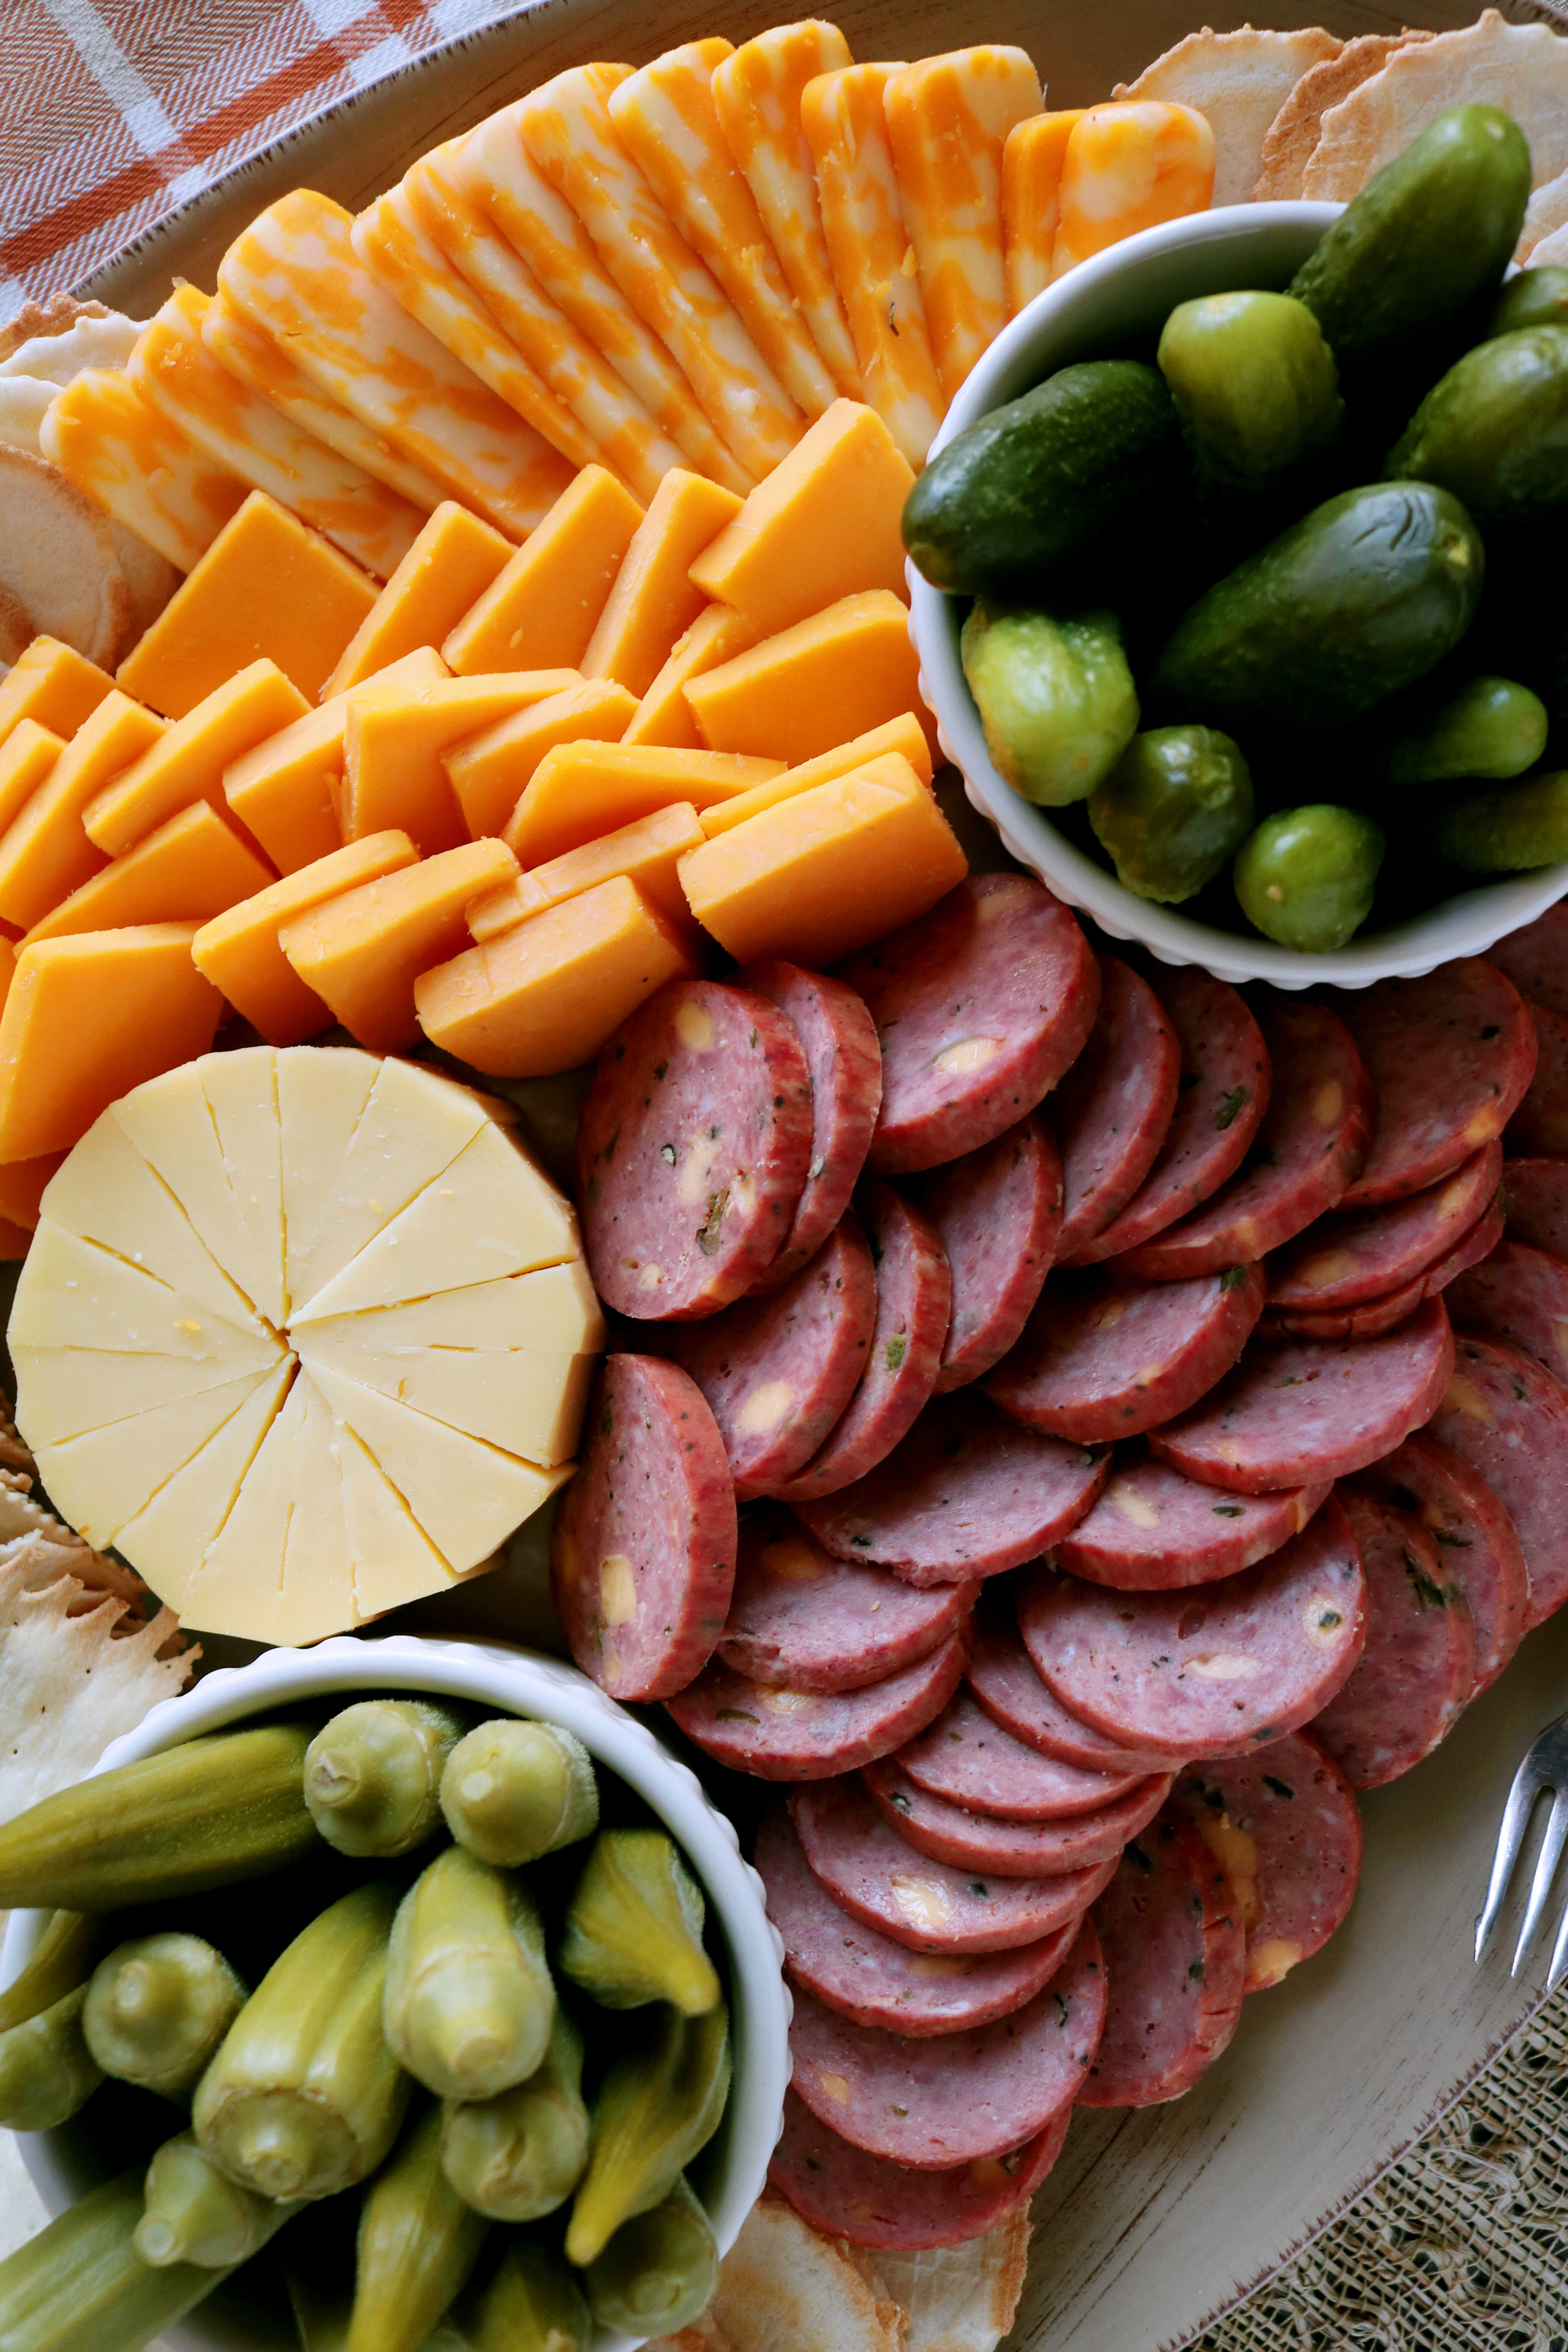 How To Make A Cheese Platter With Summer Sausage